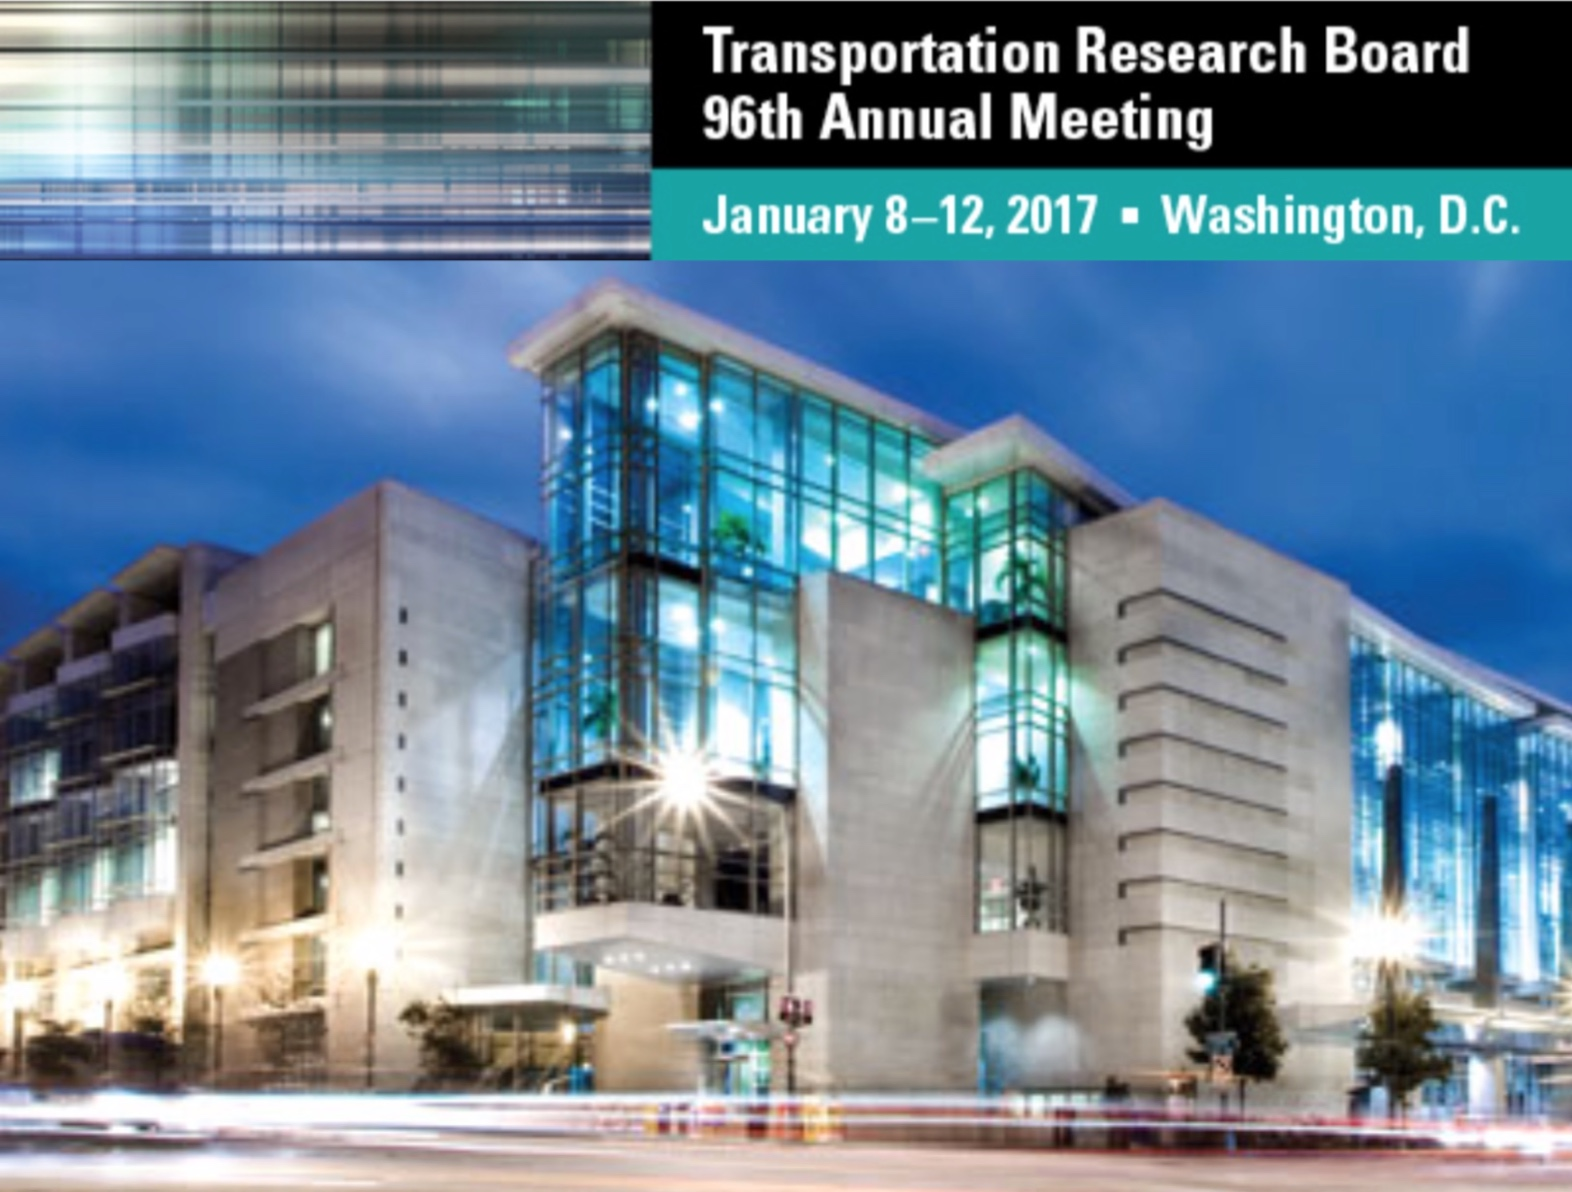 TRB 96th Annual Meeting to be Held January 8-12, 2017